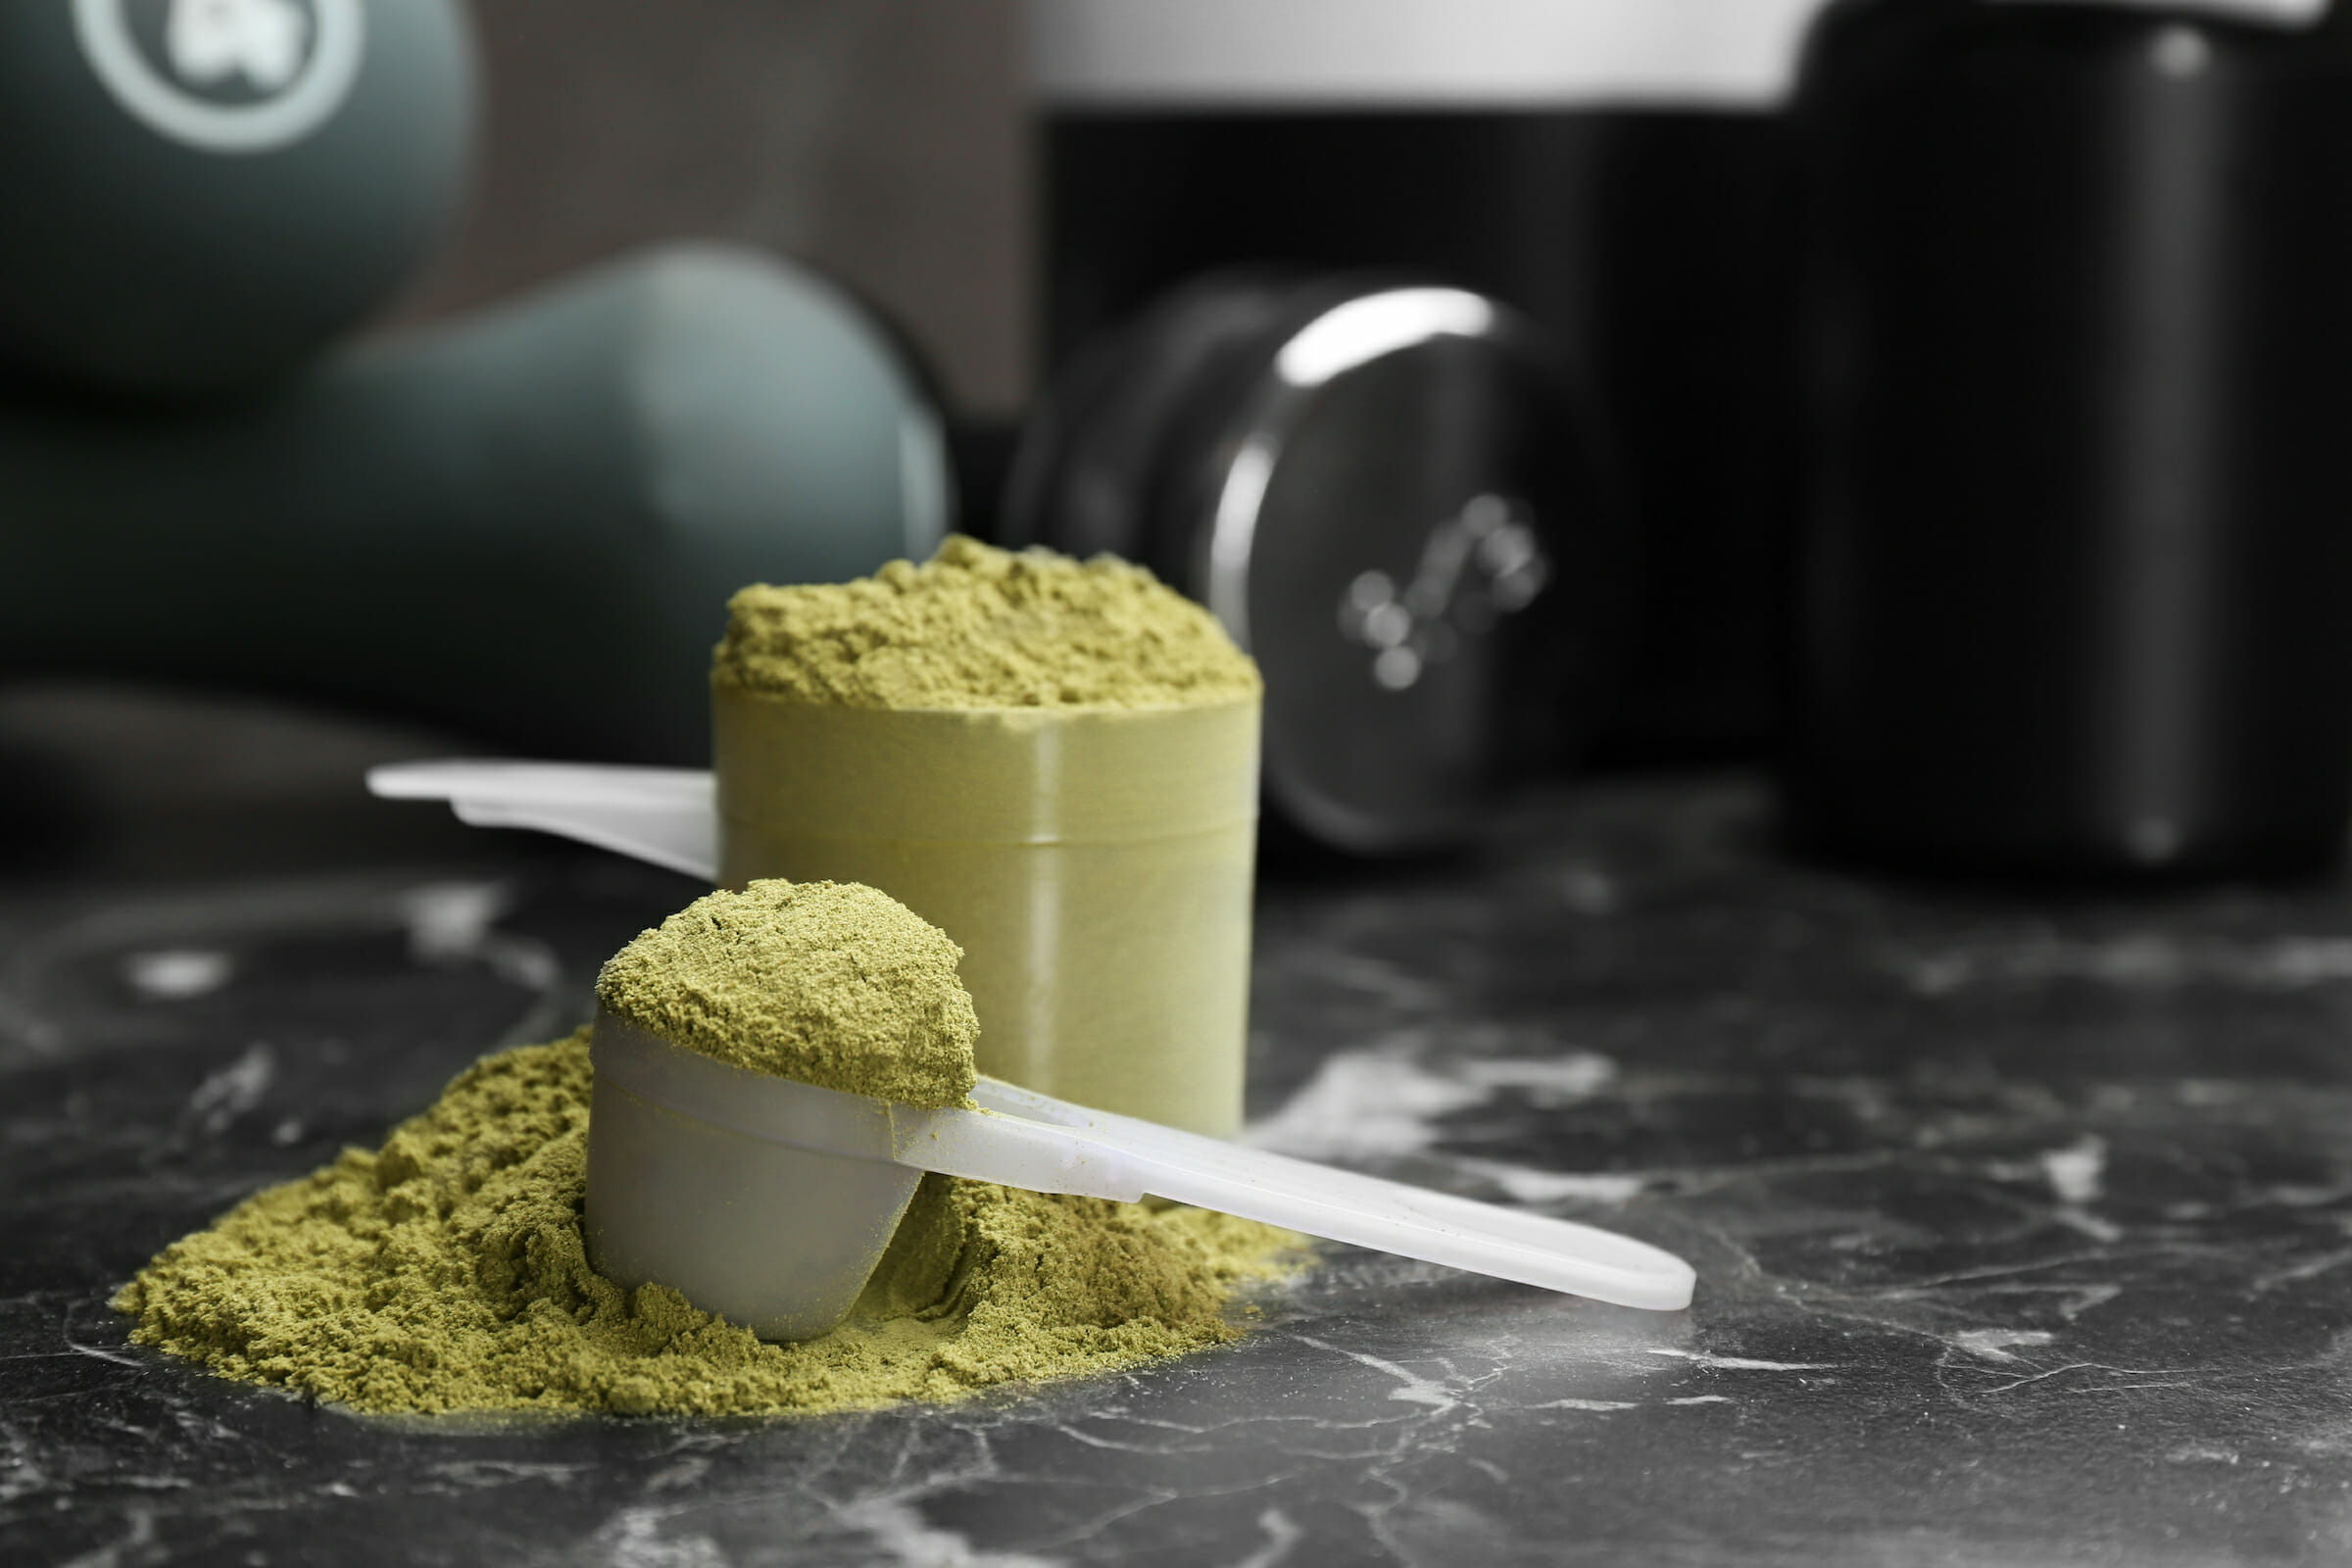 Best vegan protein powder (plant-based)